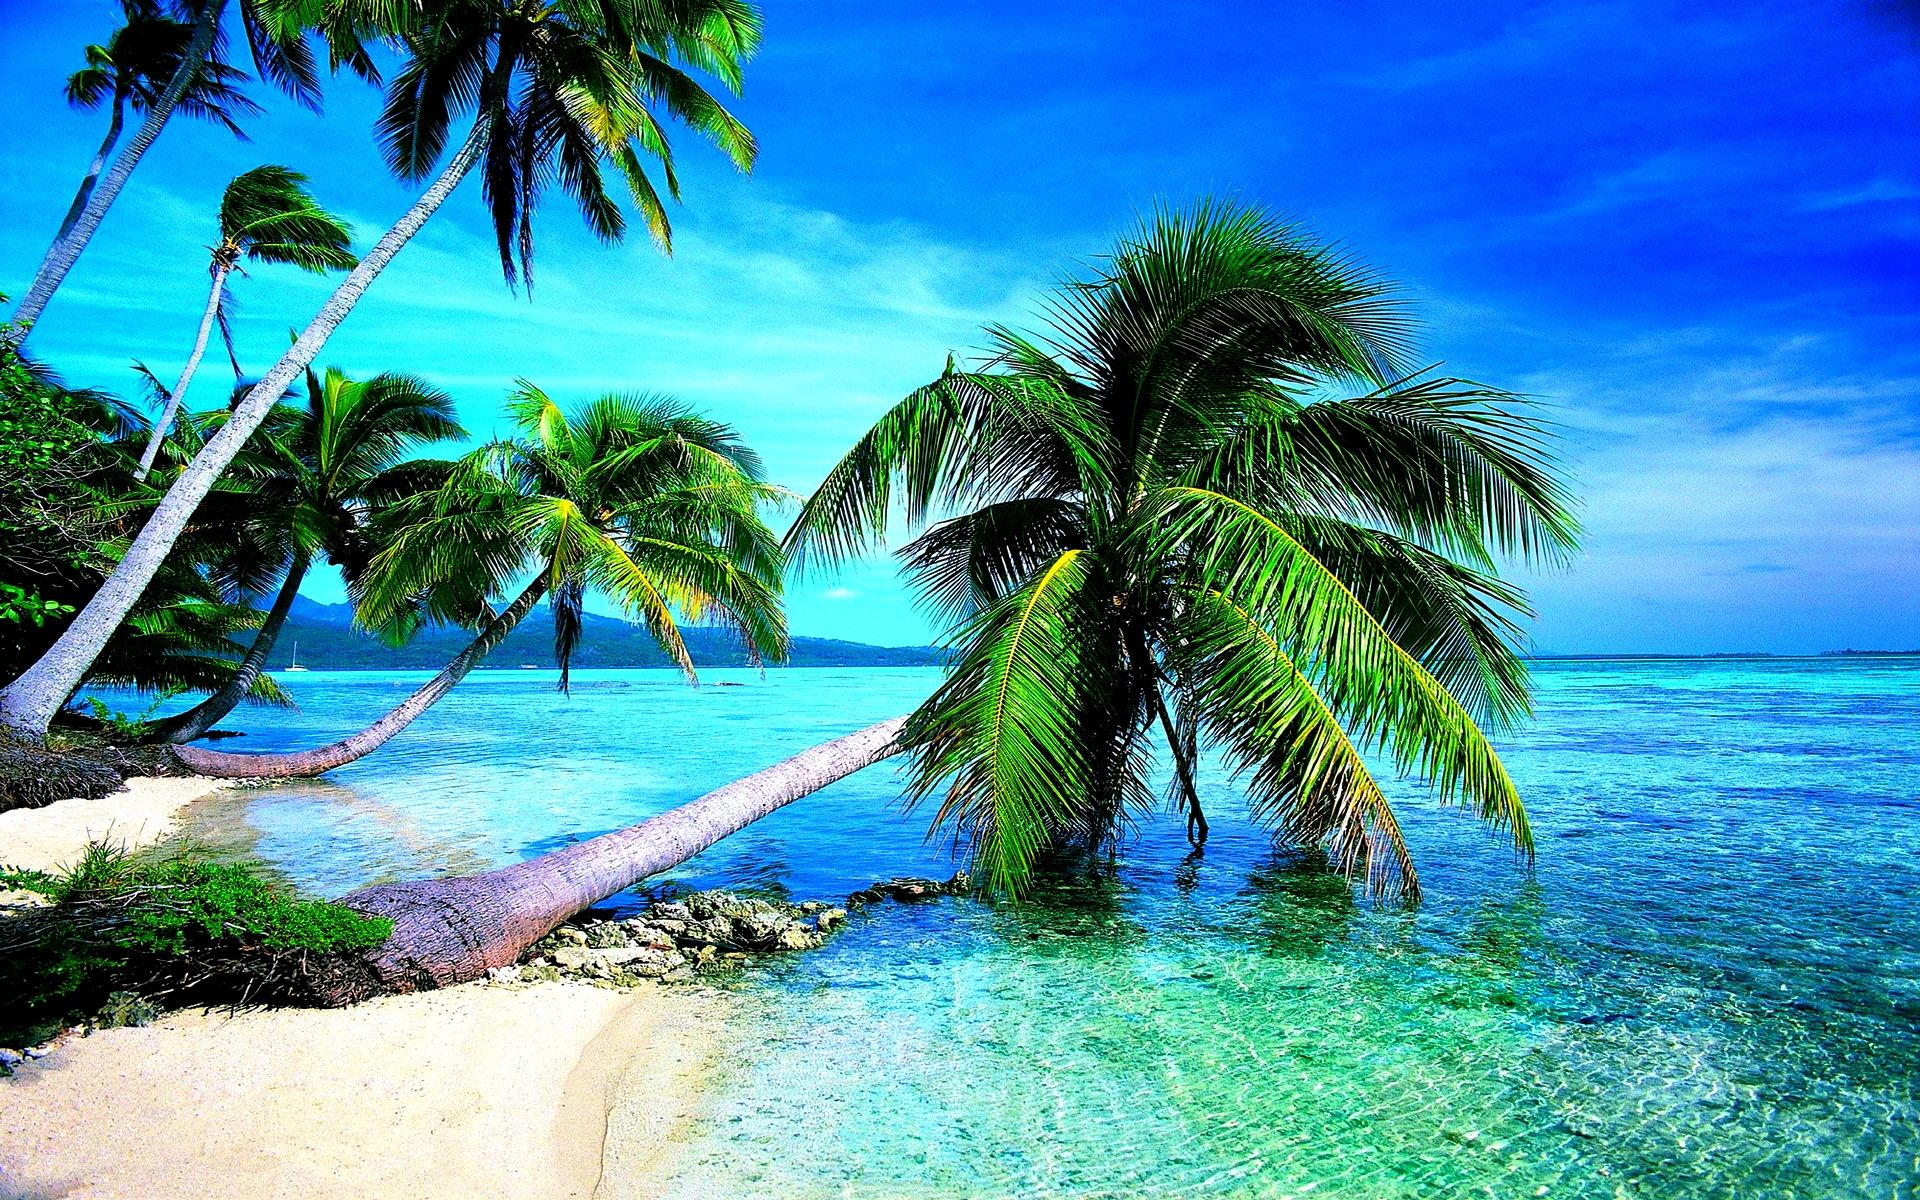 Are You In Search For The Best Beach View Wallpapers For Your Desktop Phone Than Godfather Style Has Beach Wallpaper Beautiful Beaches Tropical Island Beach